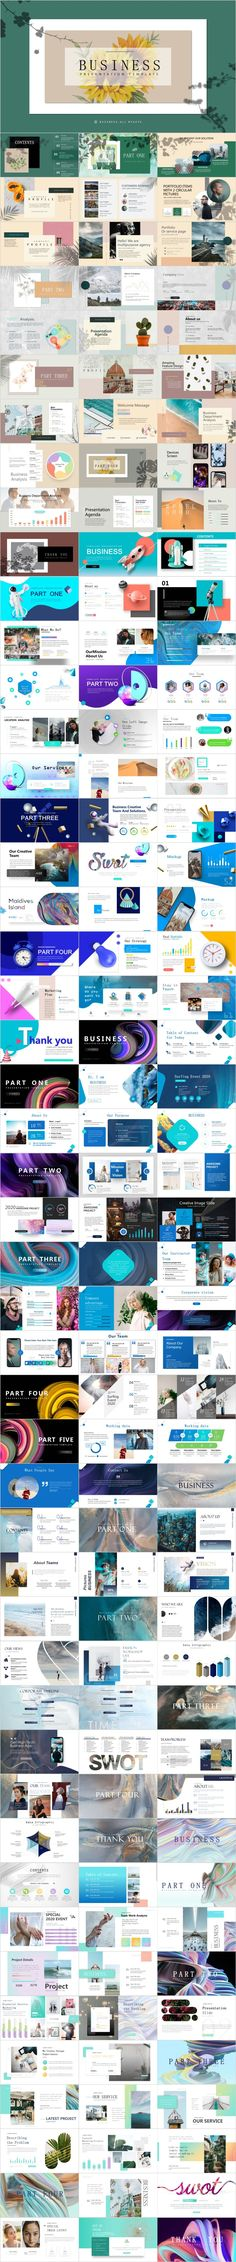 4 in 1 watercolor business ppt Great Powerpoint Presentations, Cool Powerpoint Templates, Powerpoint Presentation Slides, Professional Powerpoint Templates, Good Presentation, Keynote Template, Infographic Powerpoint, Creative Infographic, Business Ppt